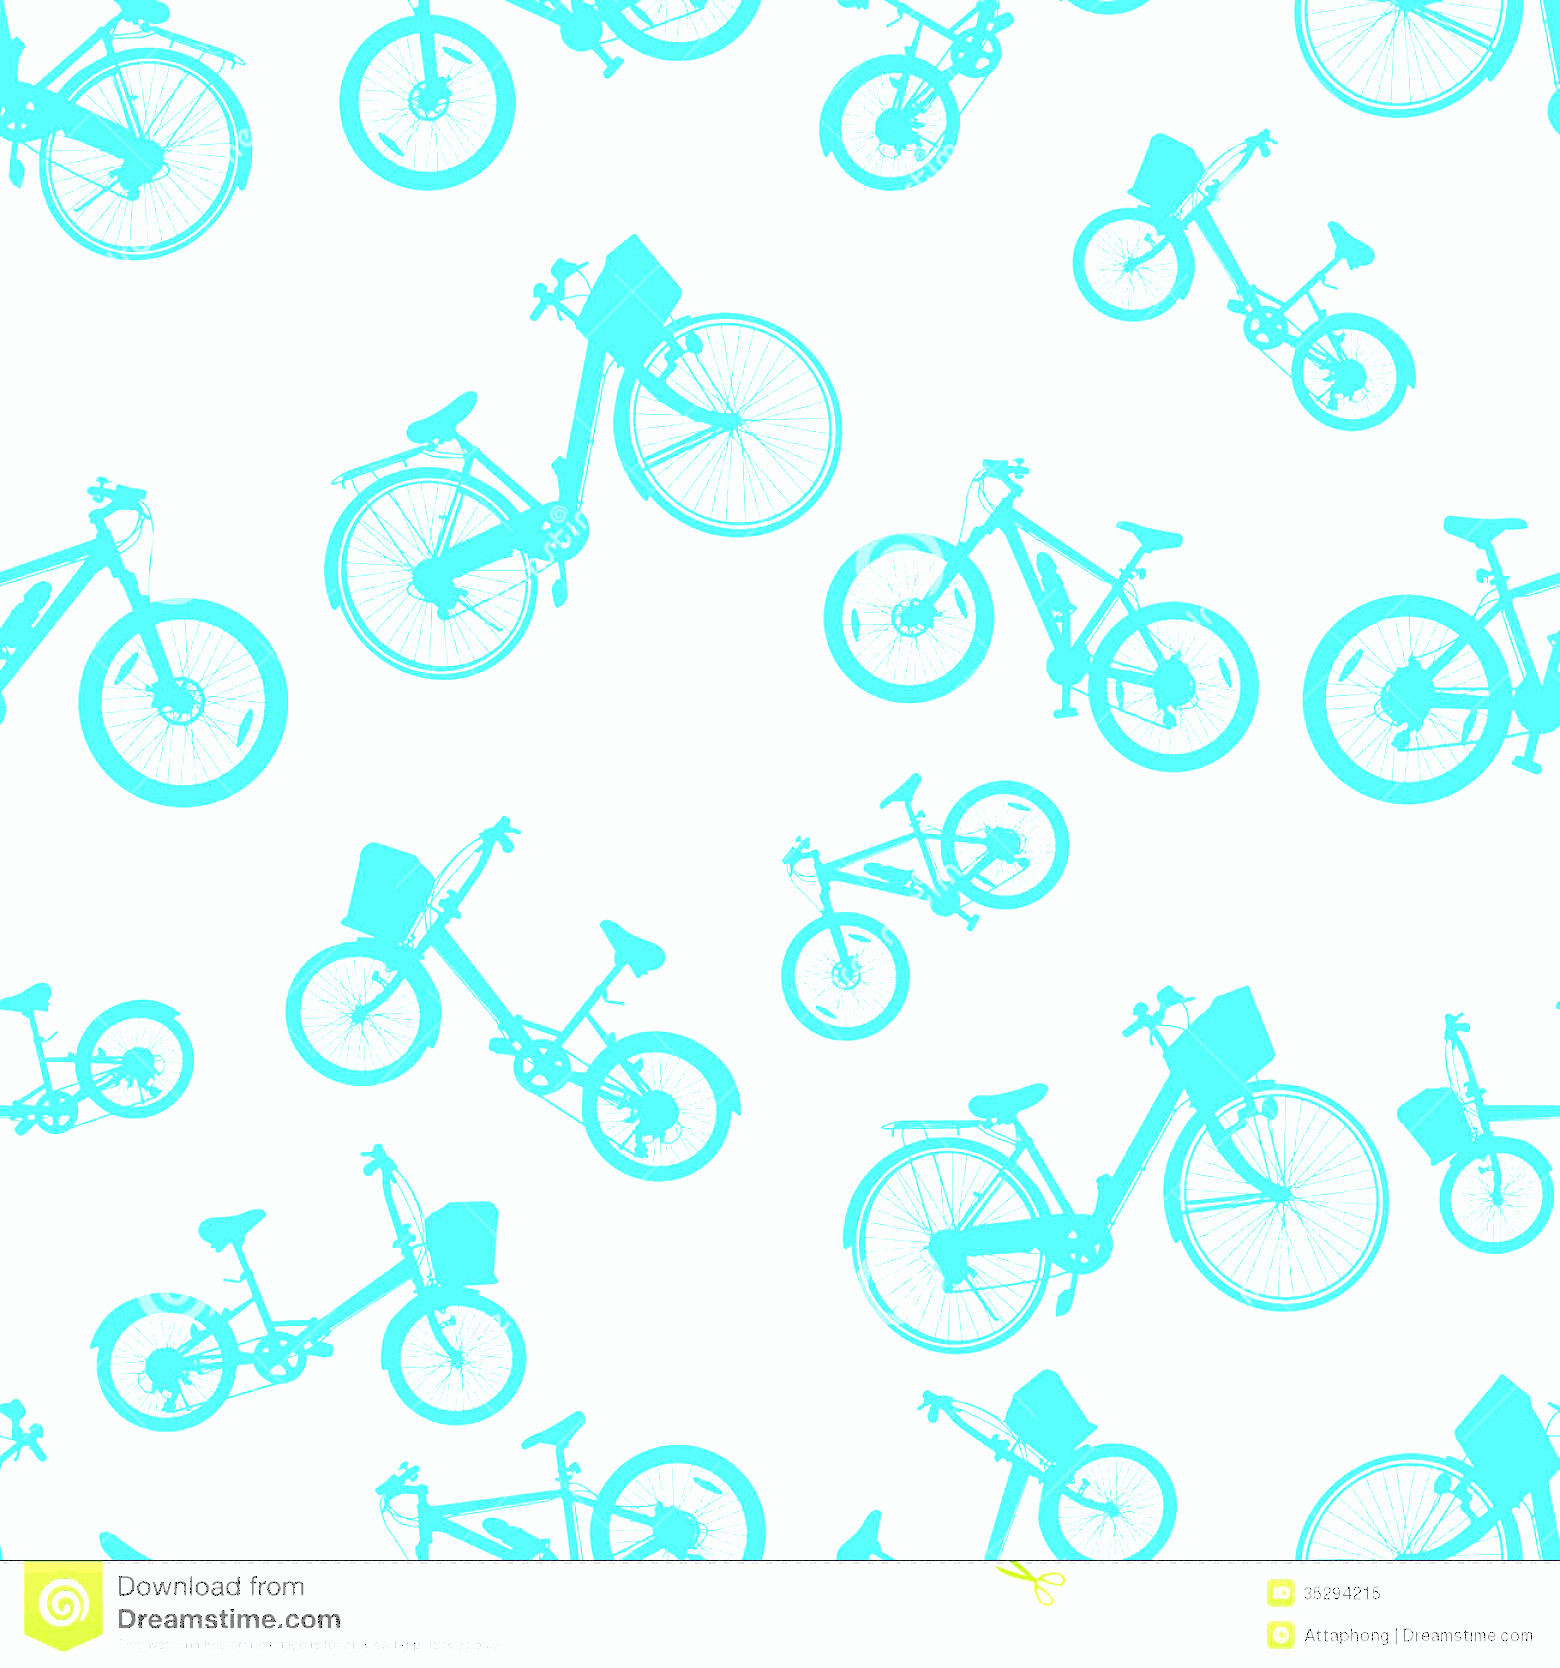 Bicycle Vector Artwork Of Patterns: Royalty Free Stock Photo Seamless Blue Bicycle Bike Vector Ride Pattern Background Illustration Image